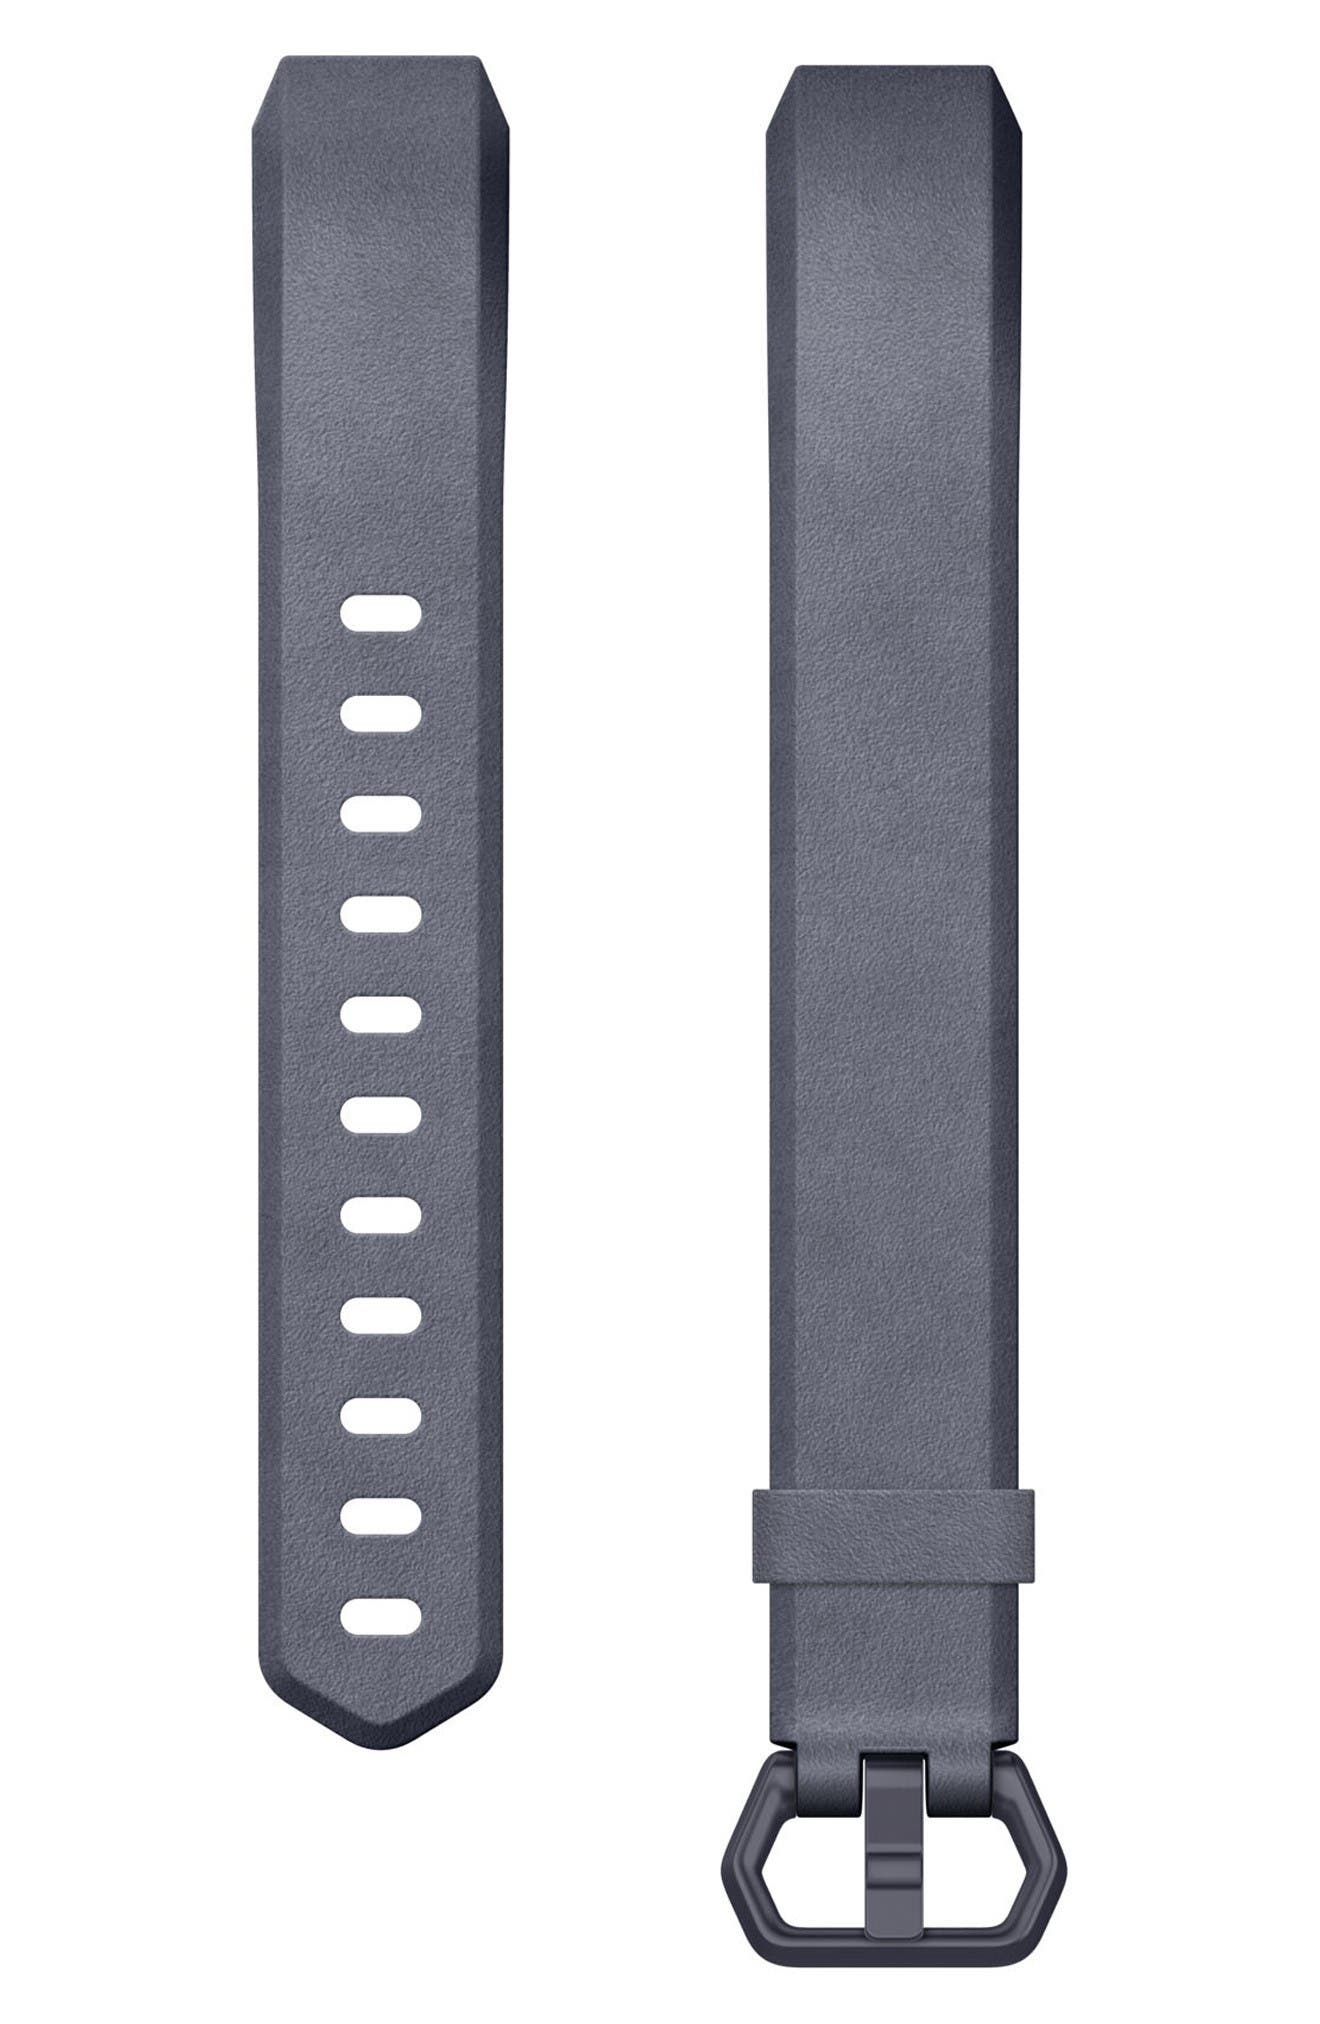 Alternate Image 1 Selected - Fitbit Alta HR Leather Accessory Band